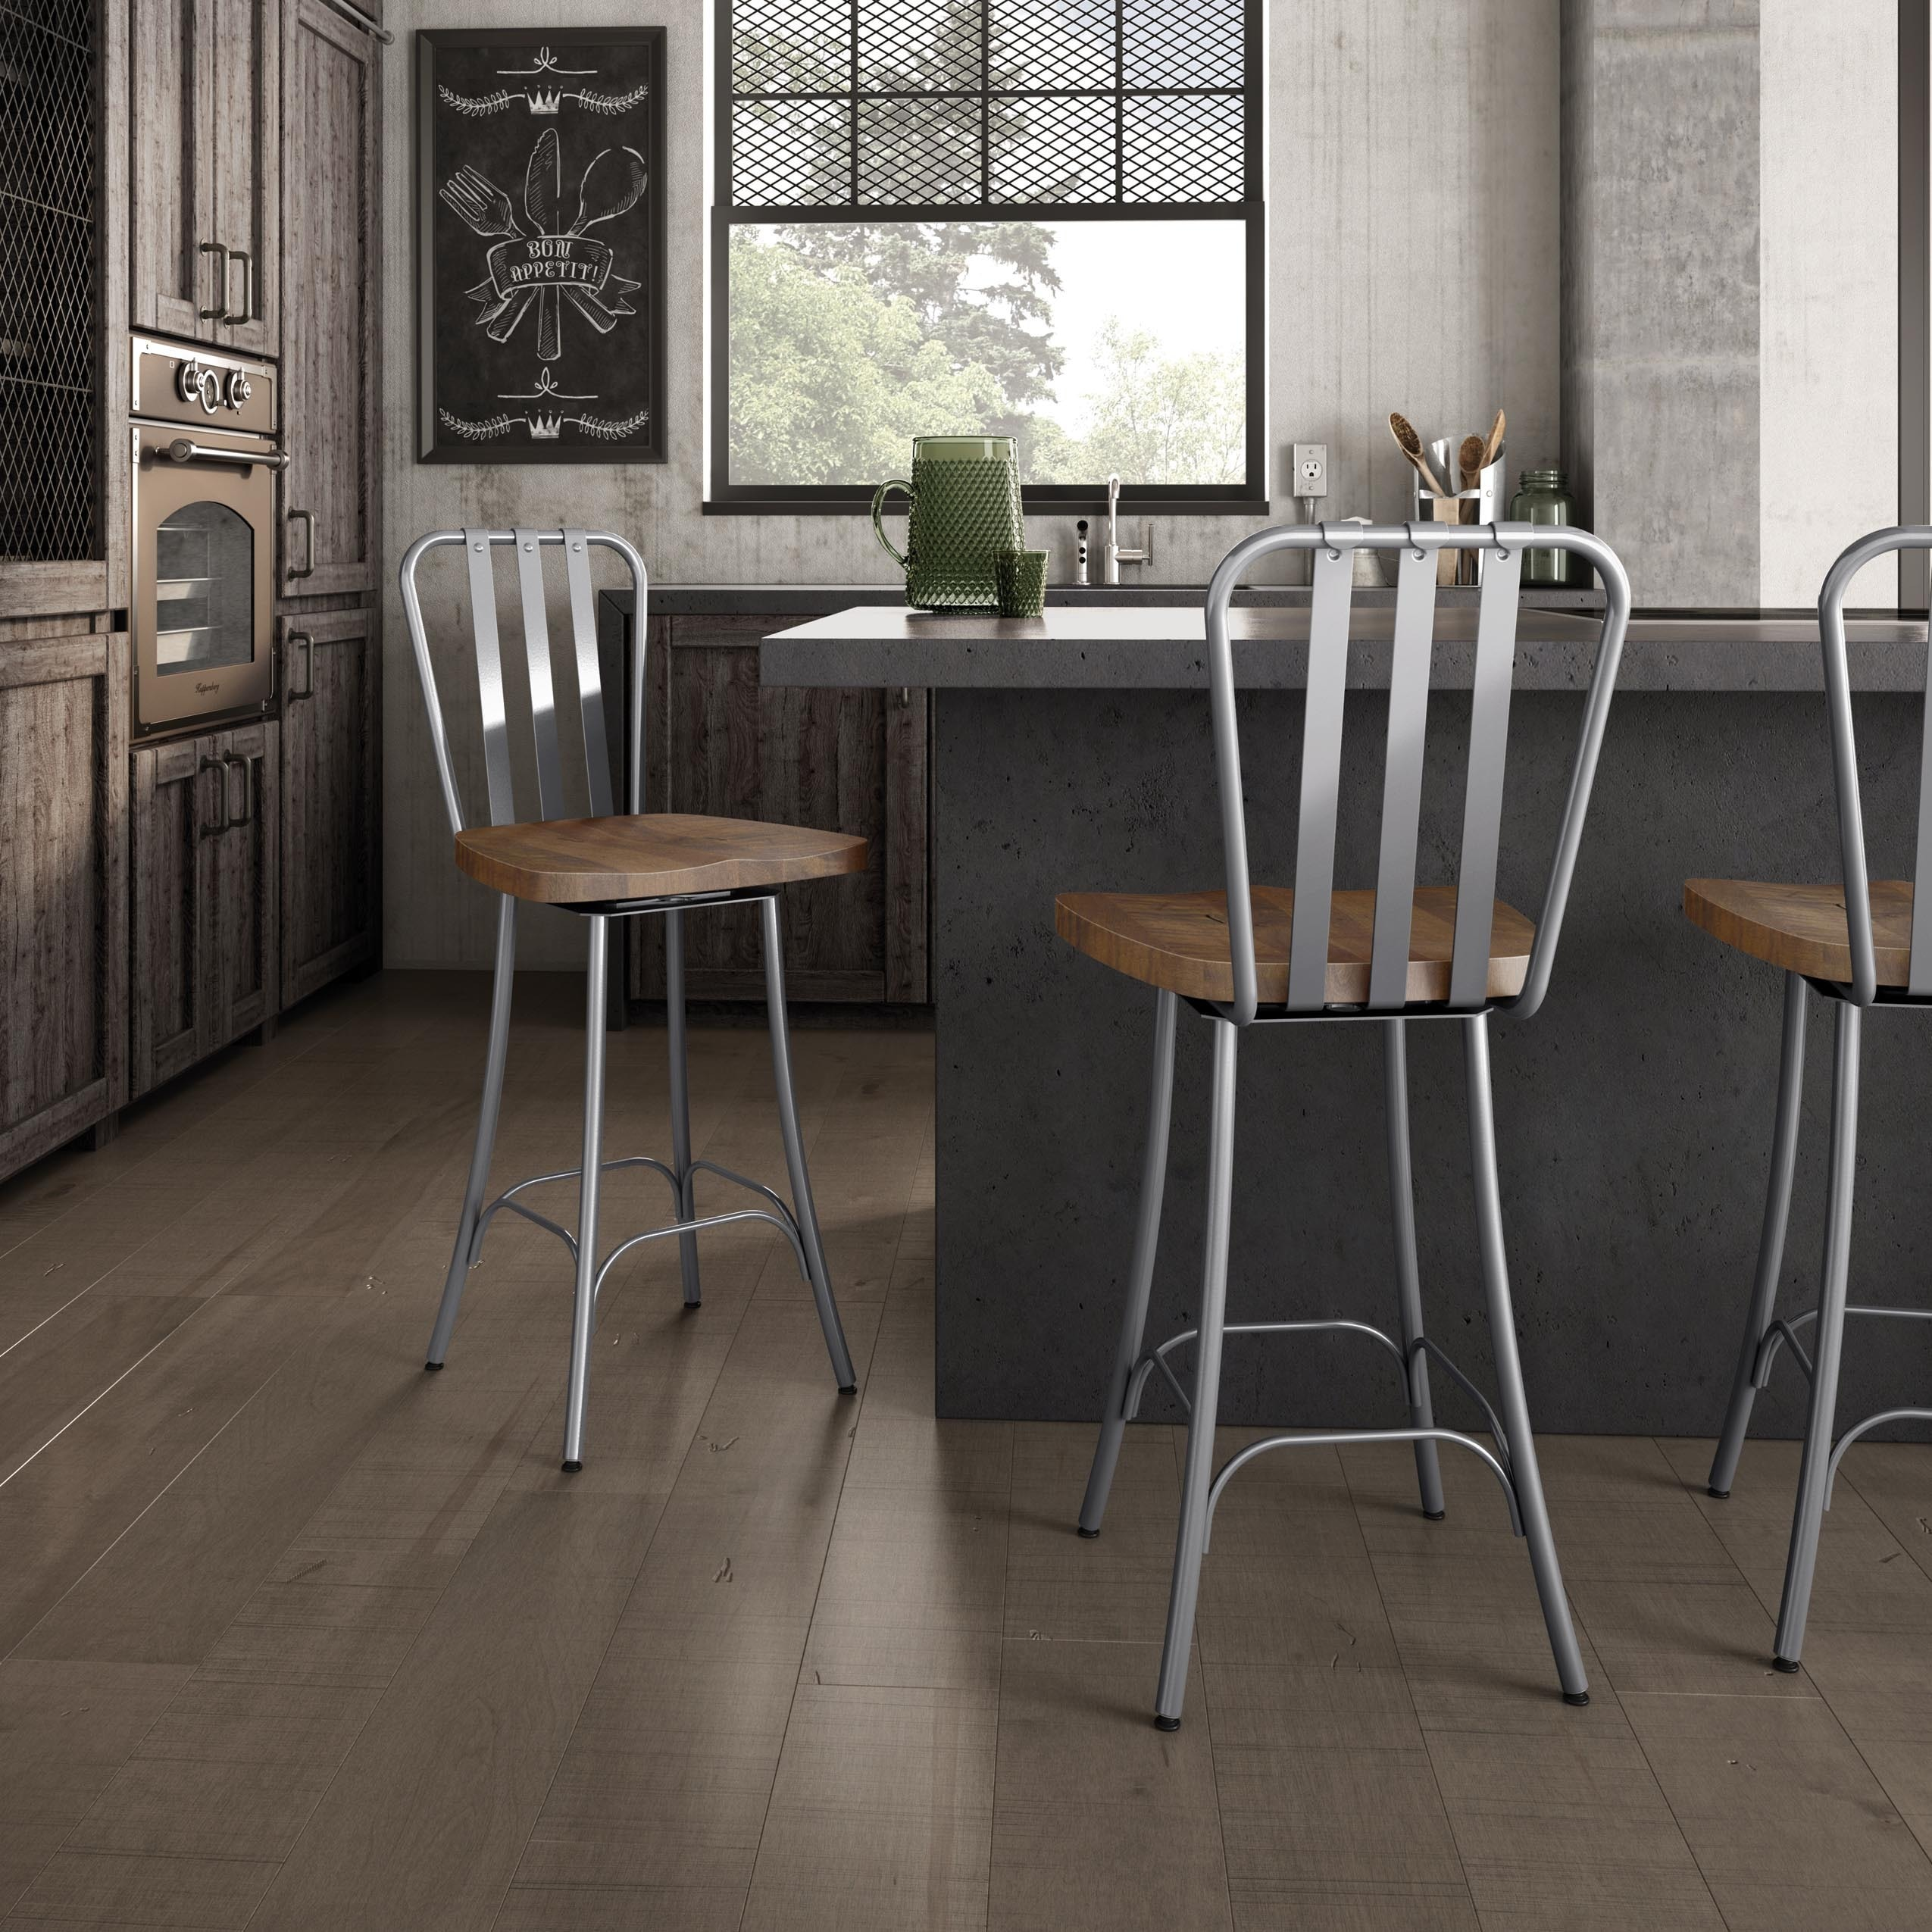 Awe Inspiring Carbon Loft Murdock Swivel Metal Counter Stool With Distressed Wood Seat Gmtry Best Dining Table And Chair Ideas Images Gmtryco